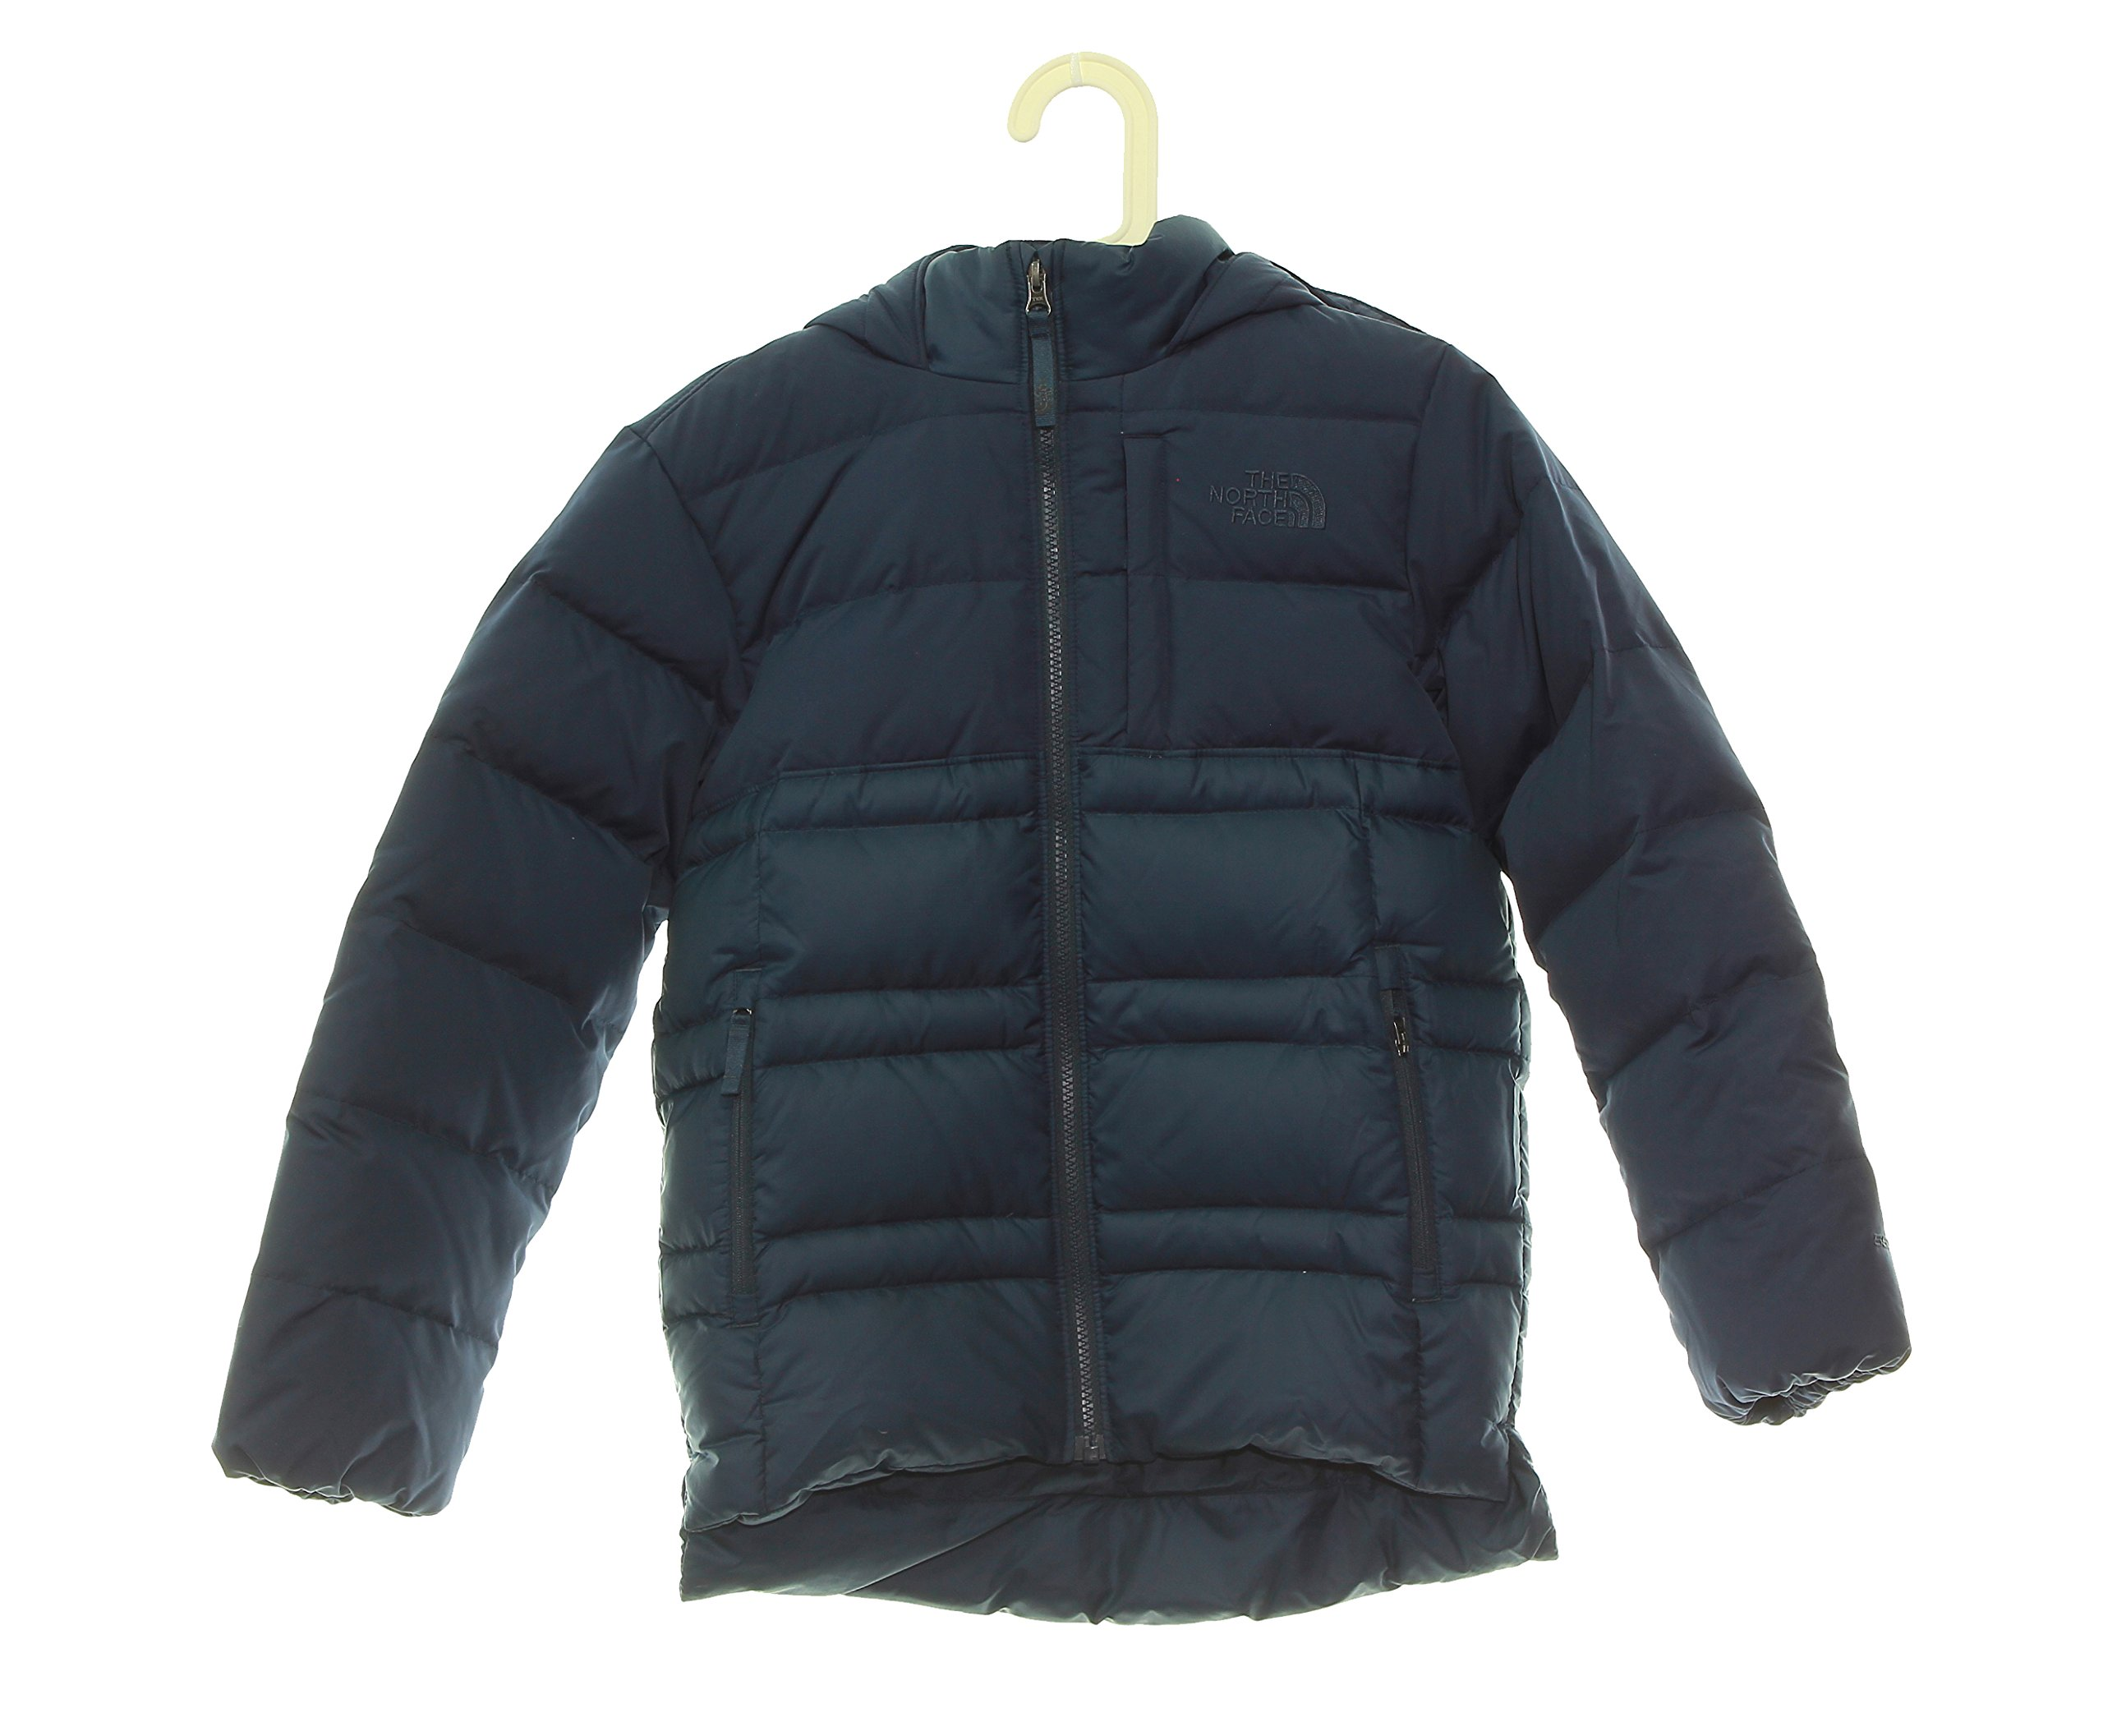 Boy's The North Face Double Down Hoodie Jacket 10/12 Medium Blue by No Warranty The North Face